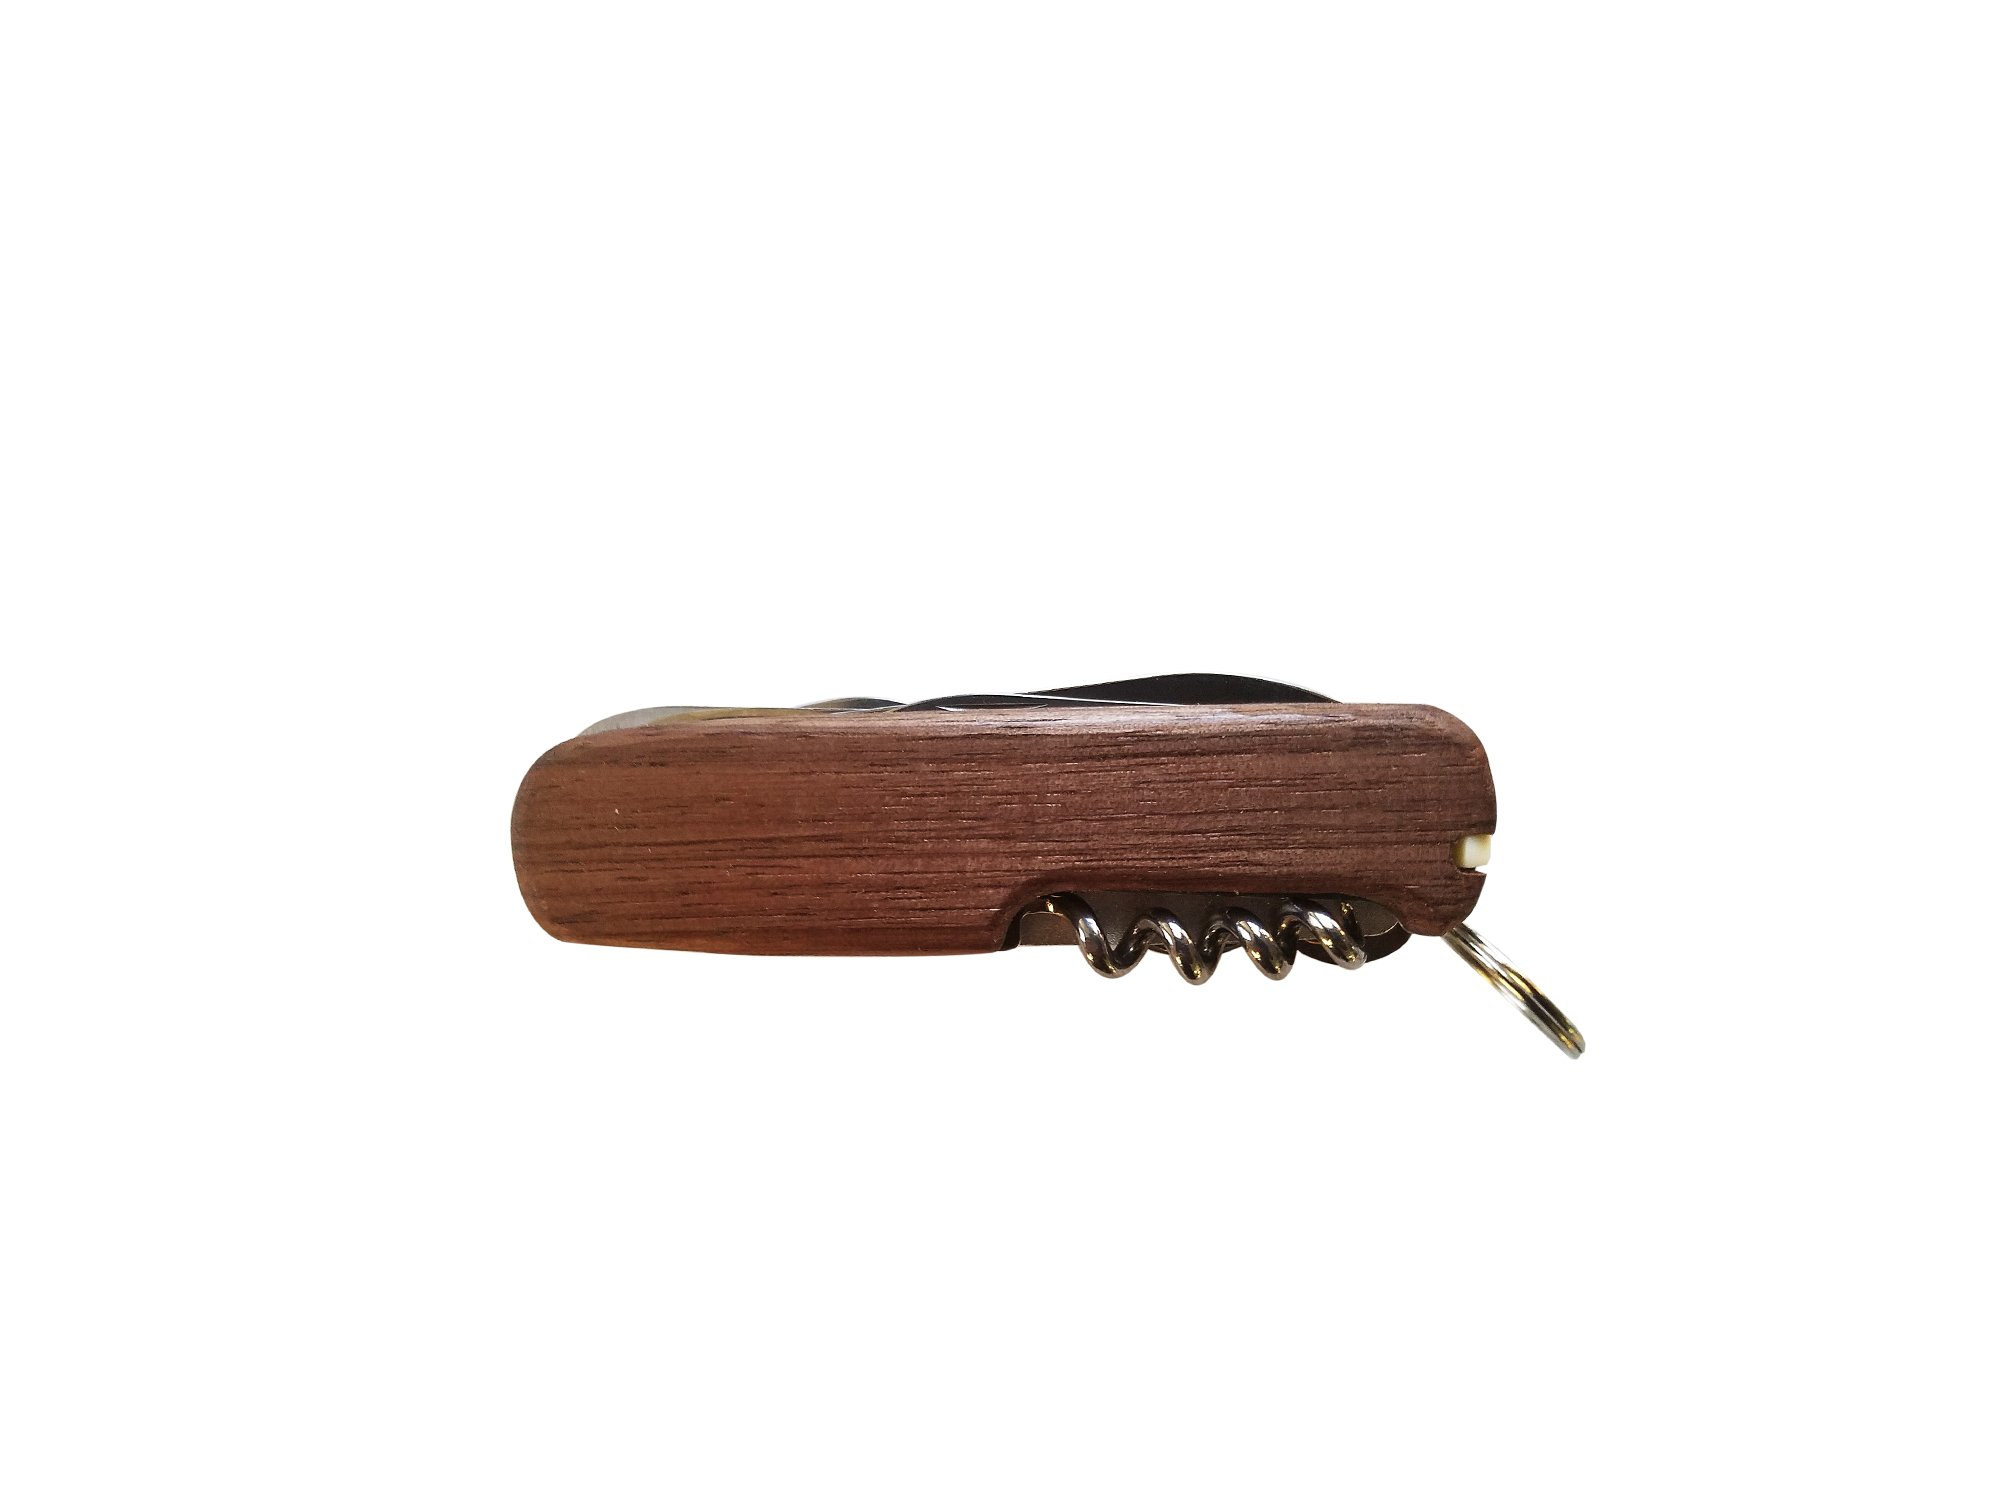 HOLLEY Pocket Knife Multi-tool MOD13A with Your Choice 4x Premium Wood Scales (Quarter Sawn Black Walnut in Picture) by Holley Knives (Image #6)